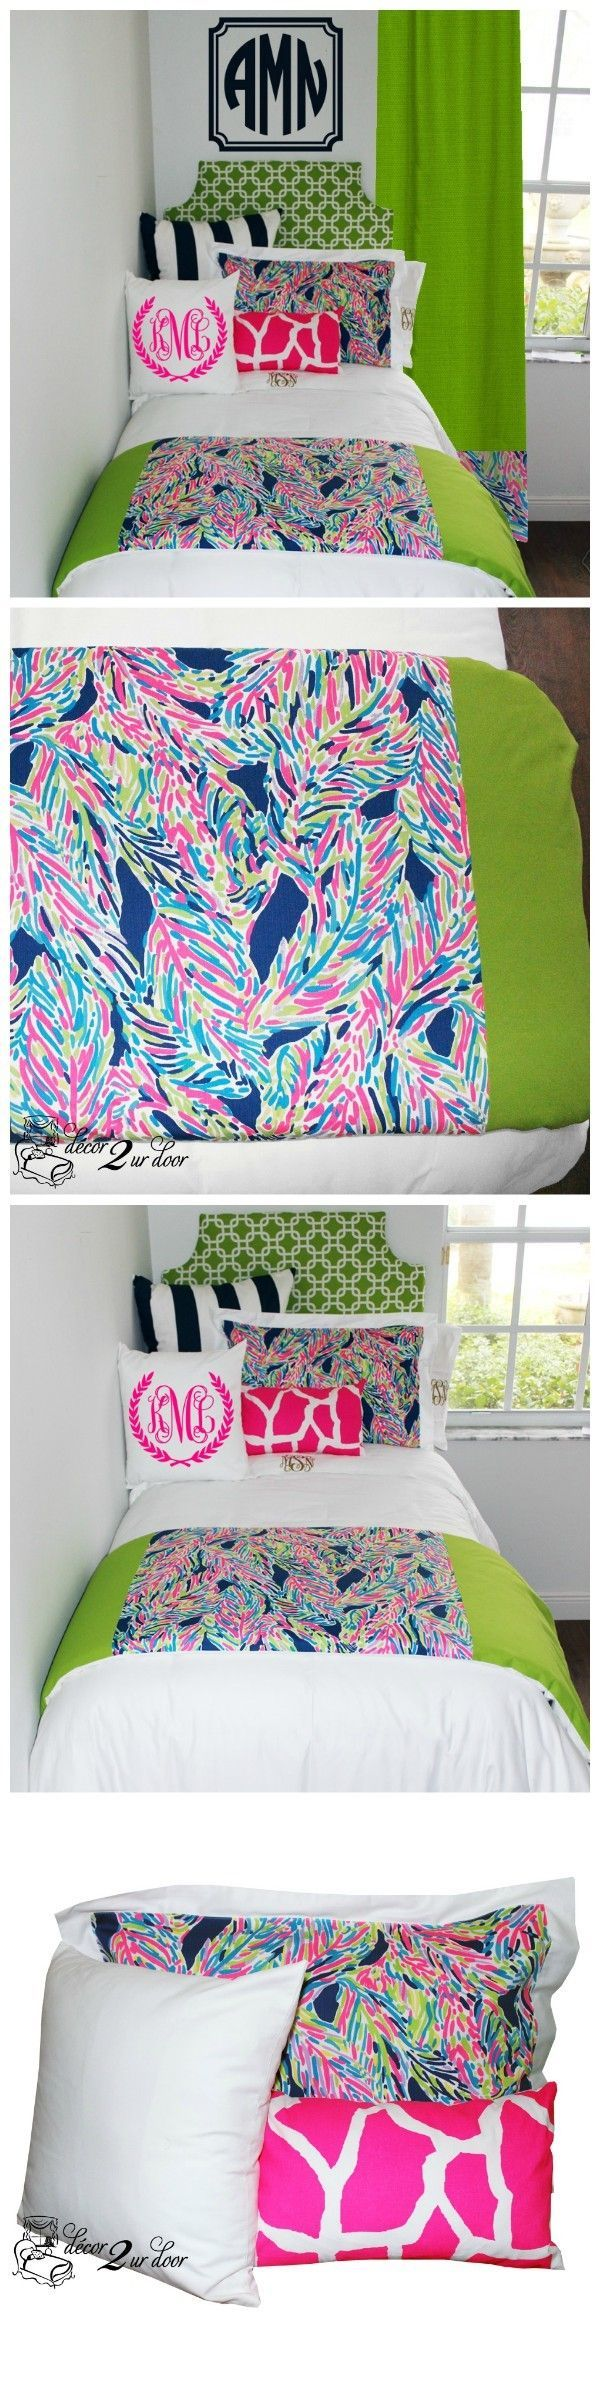 Dorm Room Bedding From Featuring Unique And Stylish Designs. Design Your  Own Dorm Room Bedding Or Select From One Of Our Designer Dorm Bedding Sets. Part 97